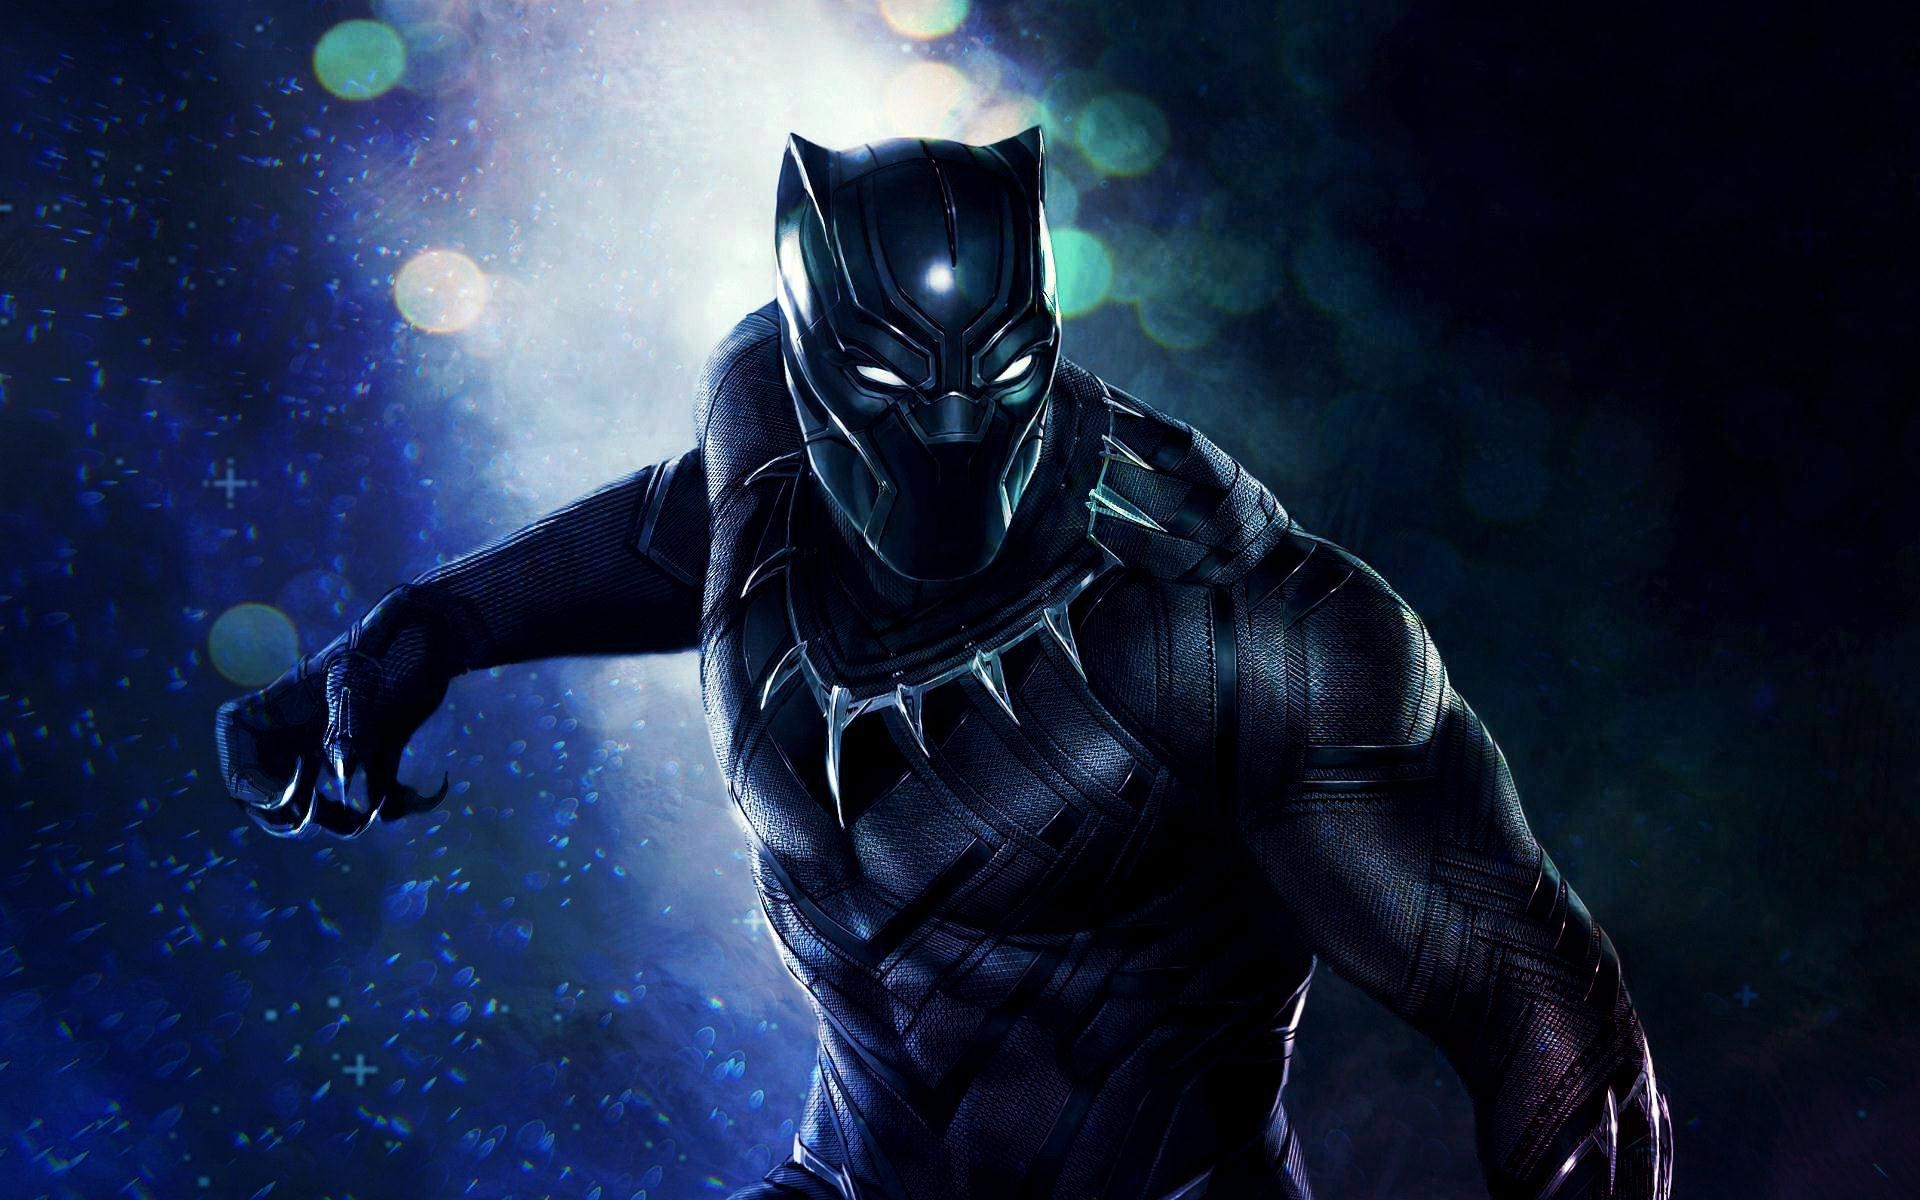 Best Black Panther Hd Wallpapers and incredible Images and Cute and 1920x1200